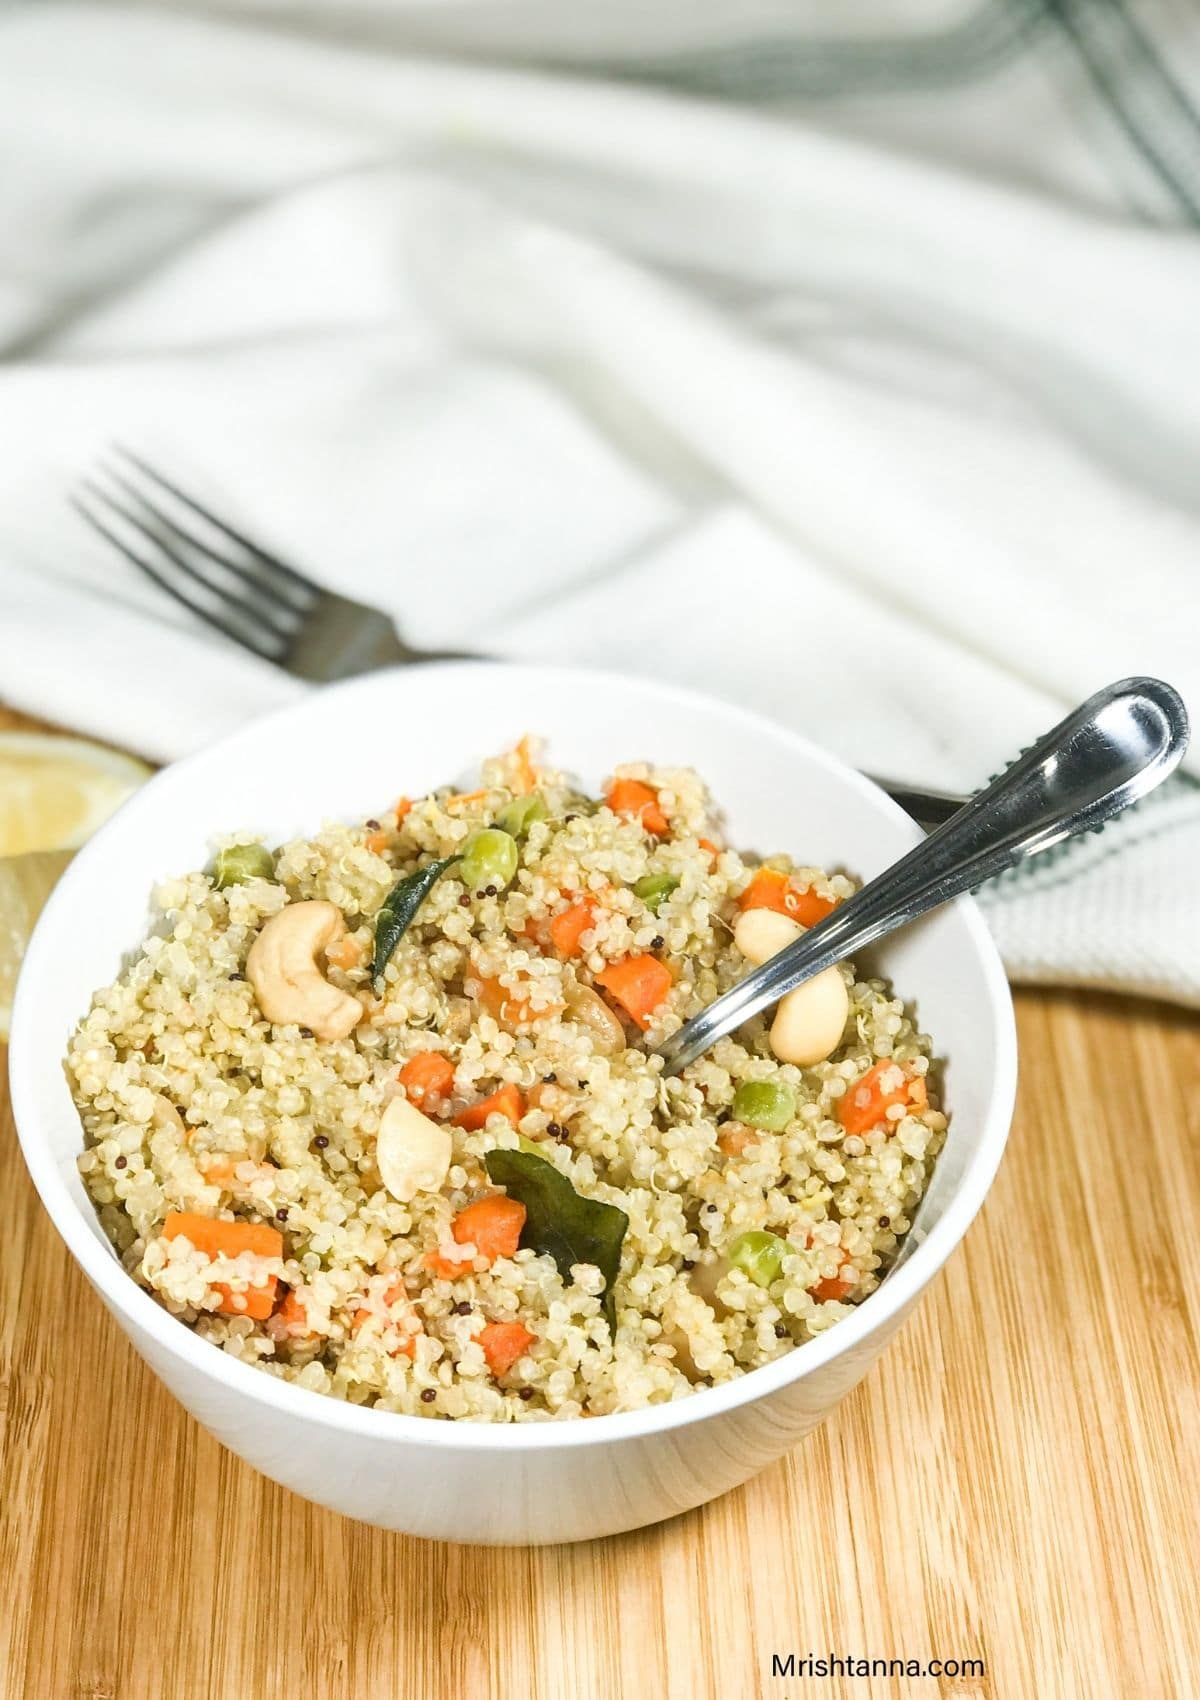 A bowl of quinoa upma with spoon inserted